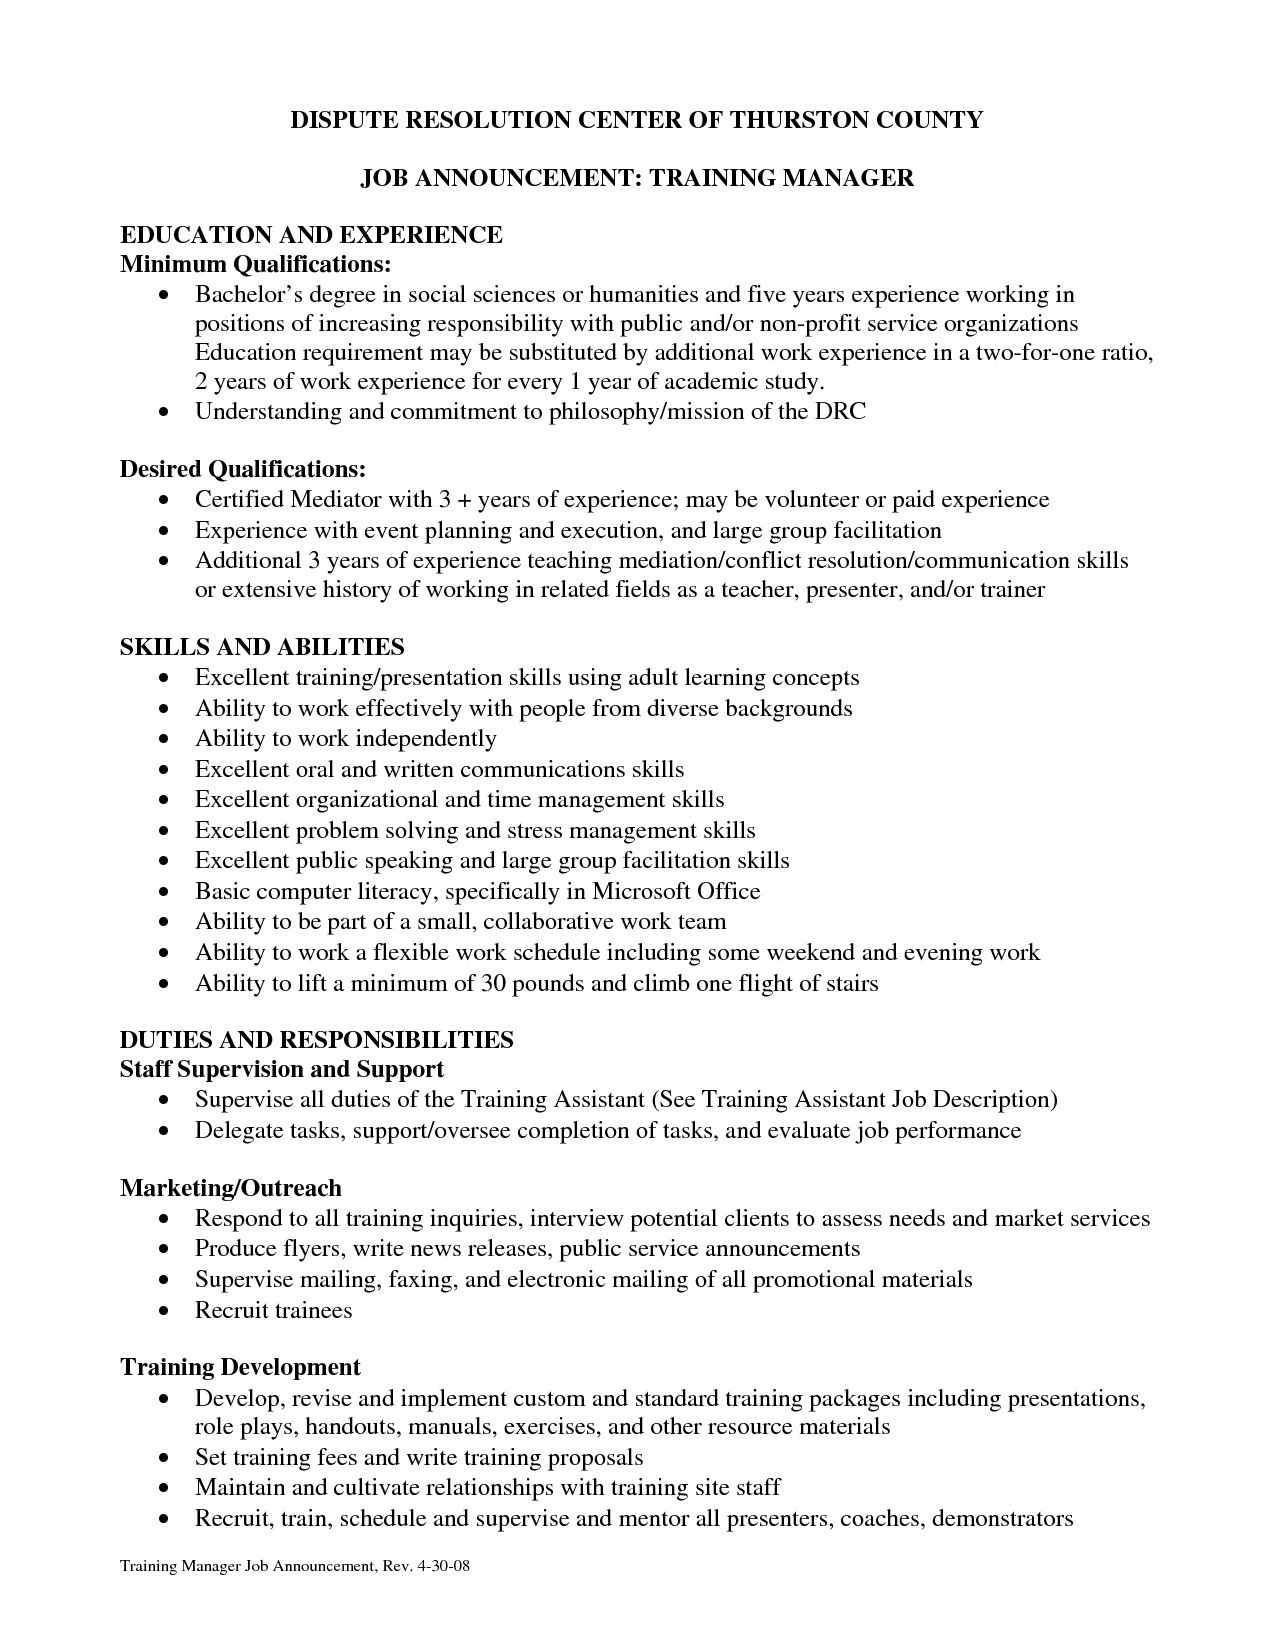 Great Training Coordinator Resume Cover Letter We Provide As Reference To Make  Correct And Good Quality Resume.